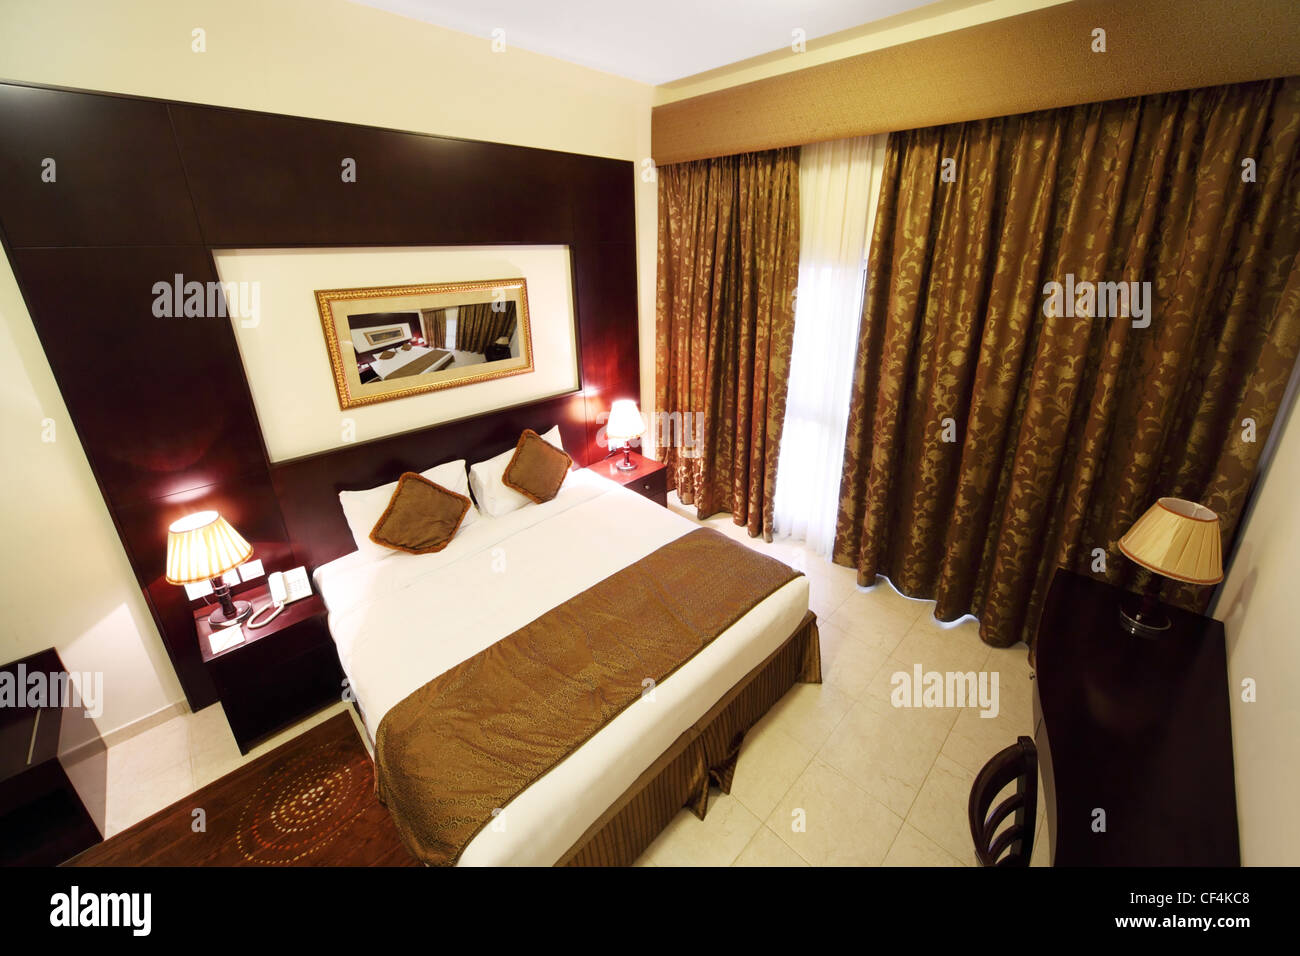 Bedroom With White Walls Brown Curtain And Big Double Bed View From